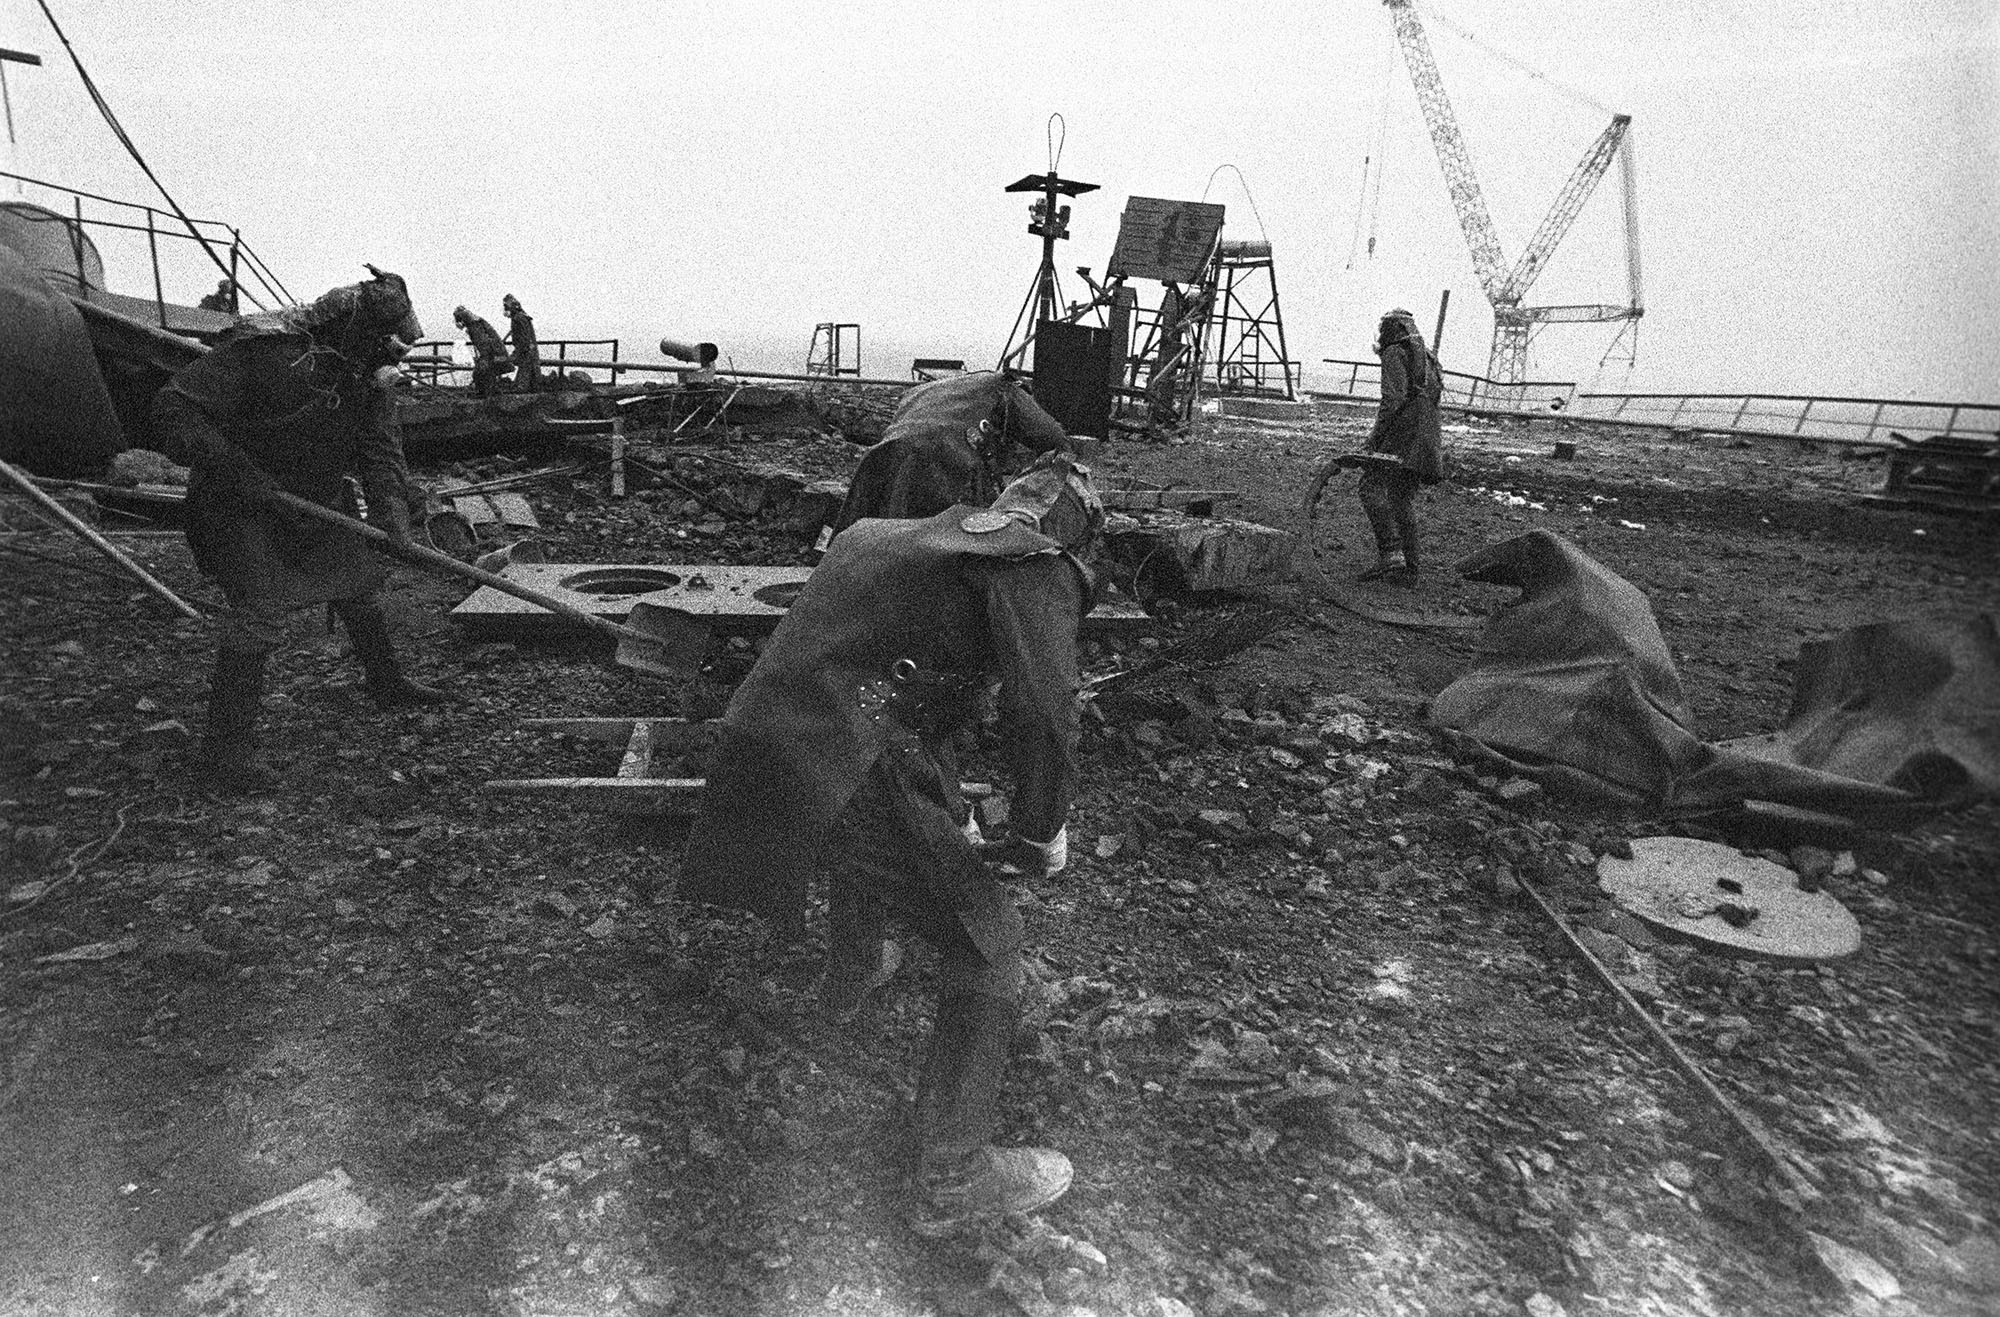 Chernobyl Disaster: Photos From 1986 - The Atlantic